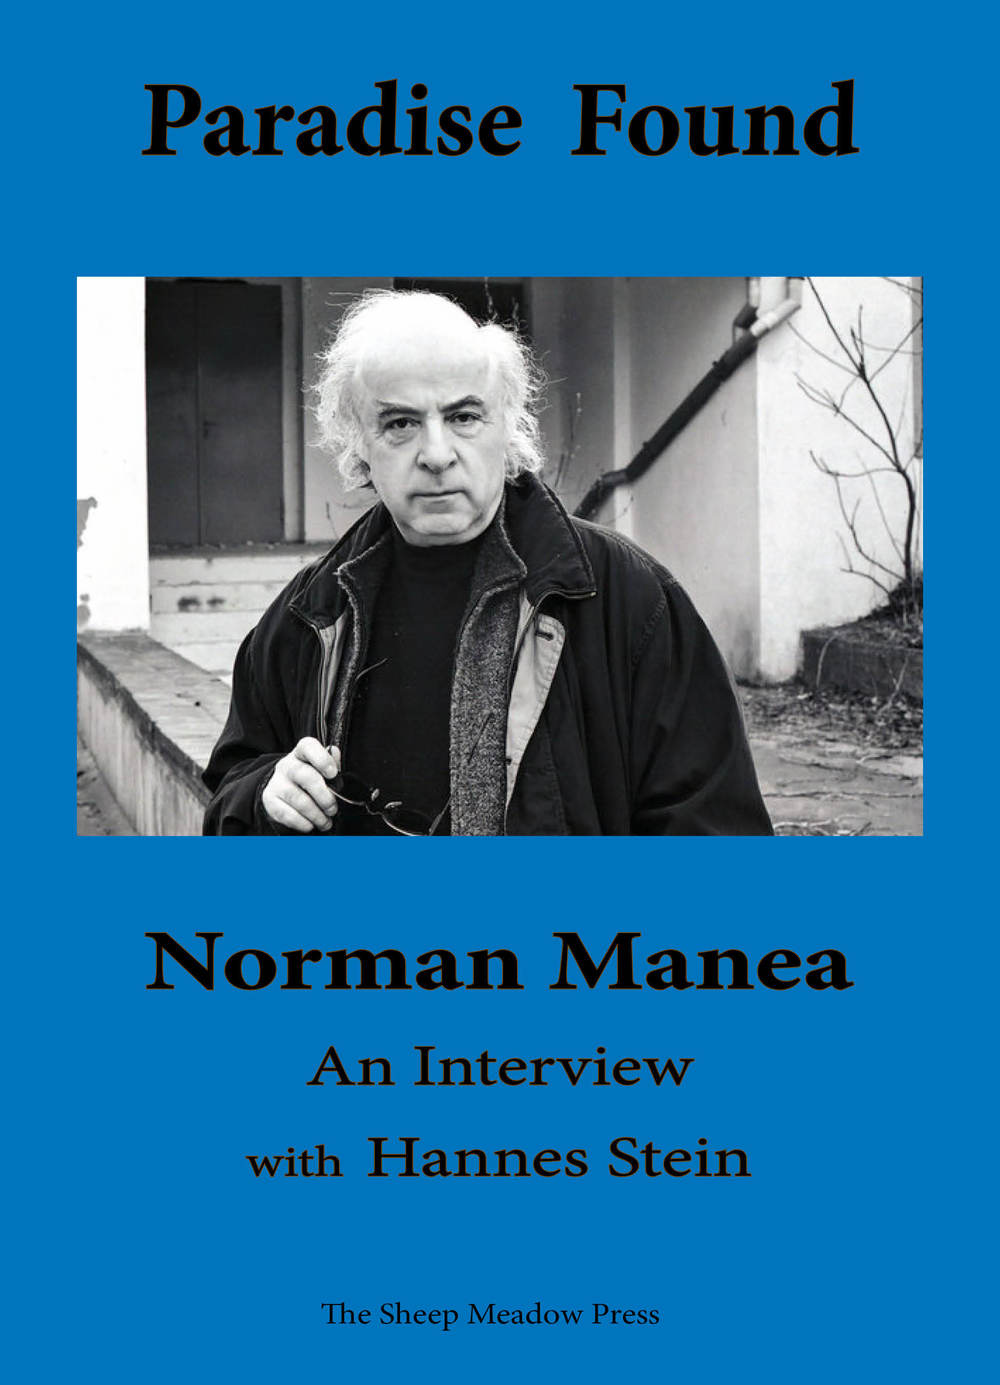 Manea_Stein_Cover_GALLEY_8.7.2013.jpg